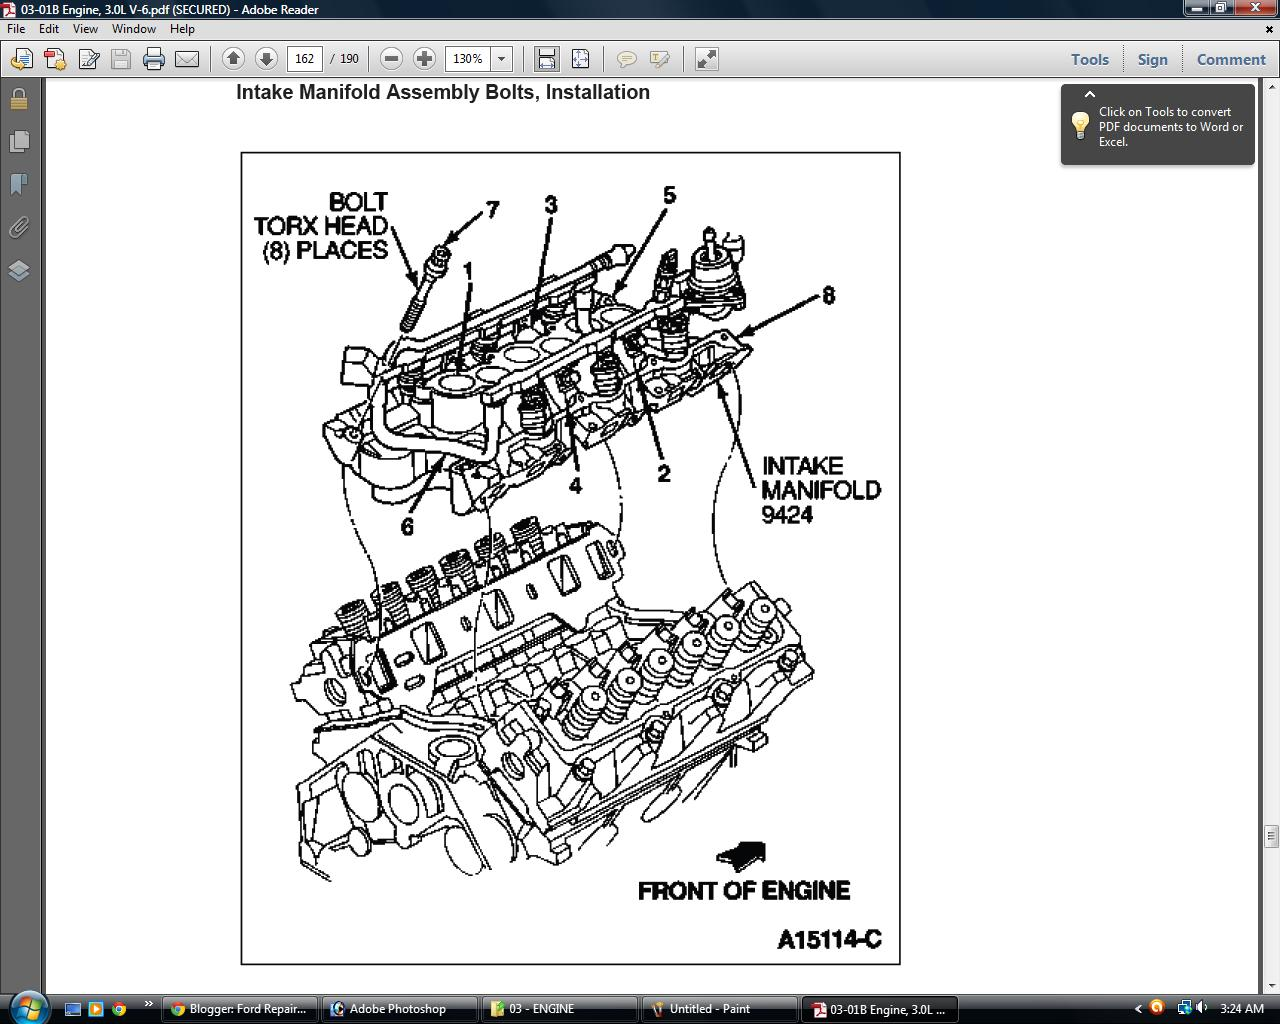 2004 jeep grand cherokee 4 0l engine coolant diagram 3 0l ecodiesel v6 engine specs vm [ 1280 x 1024 Pixel ]